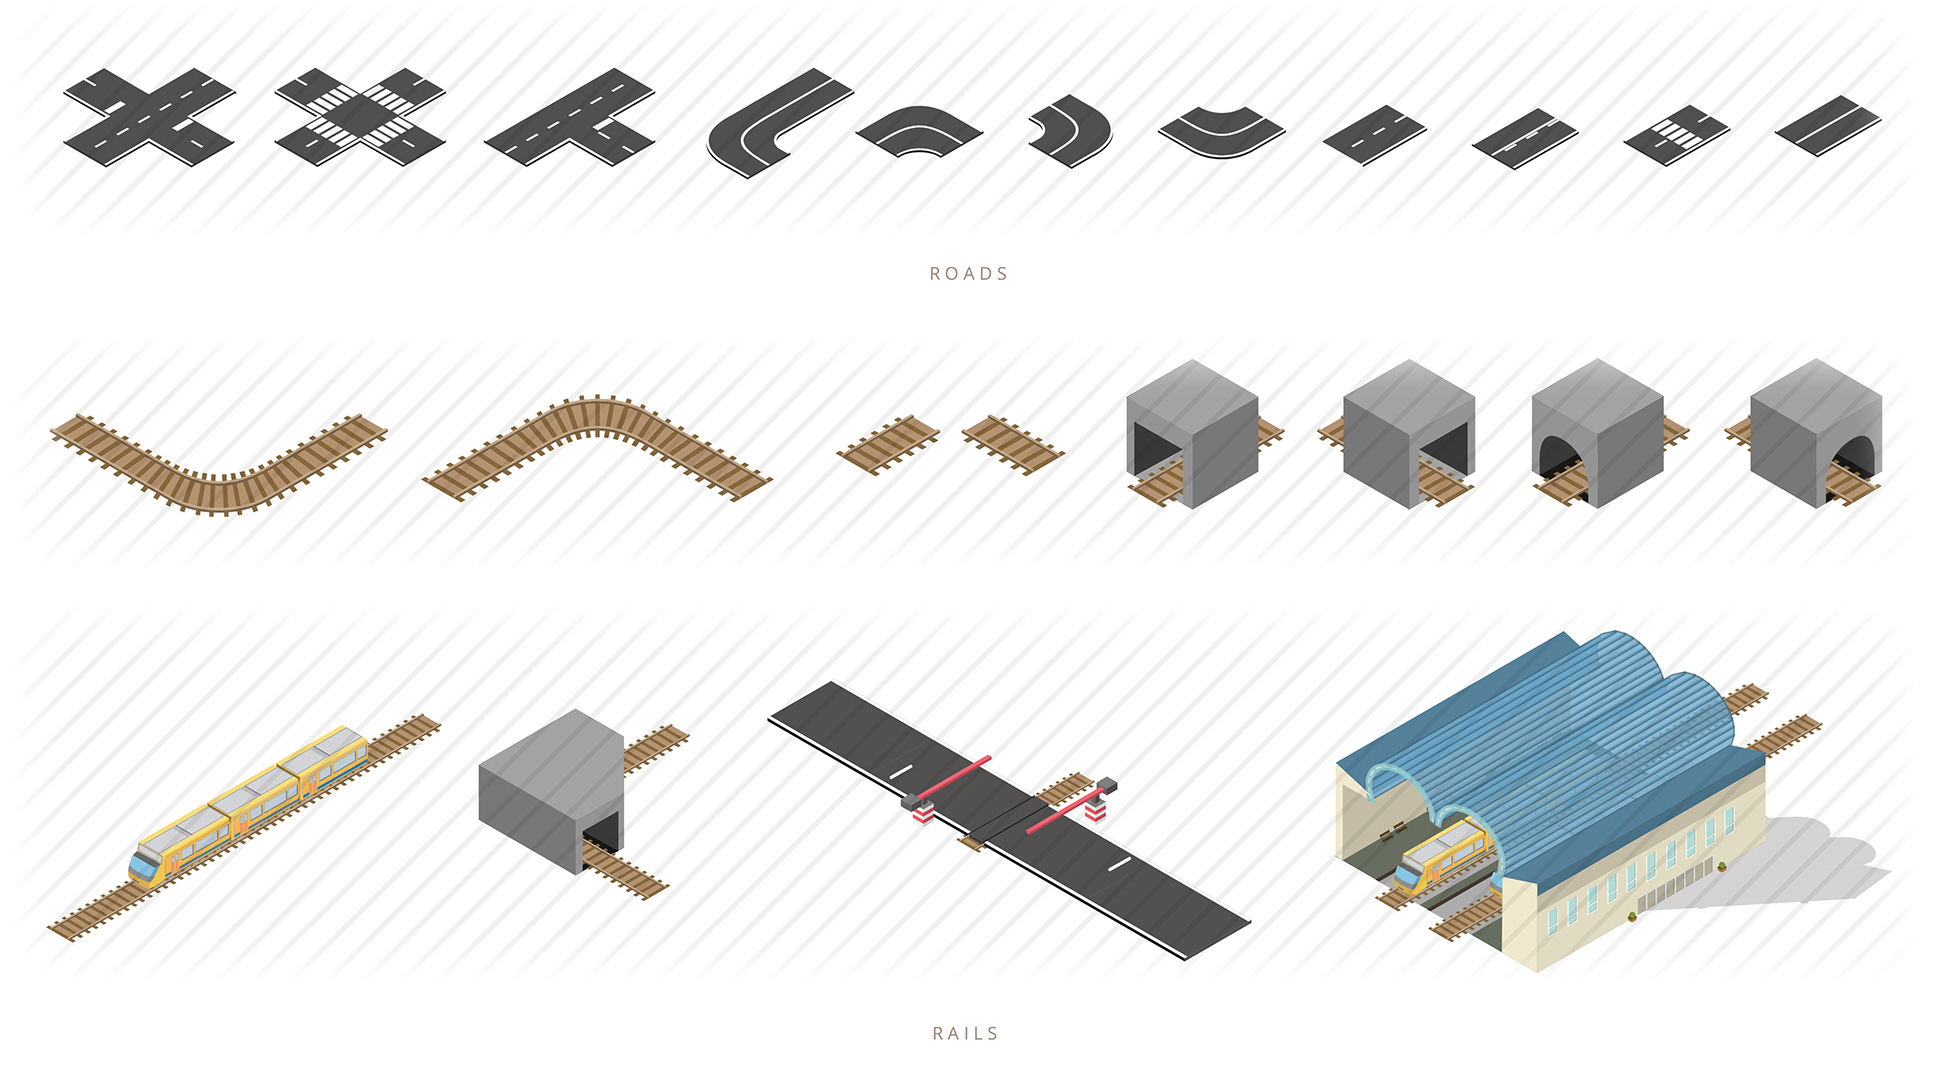 isometric roads and rails